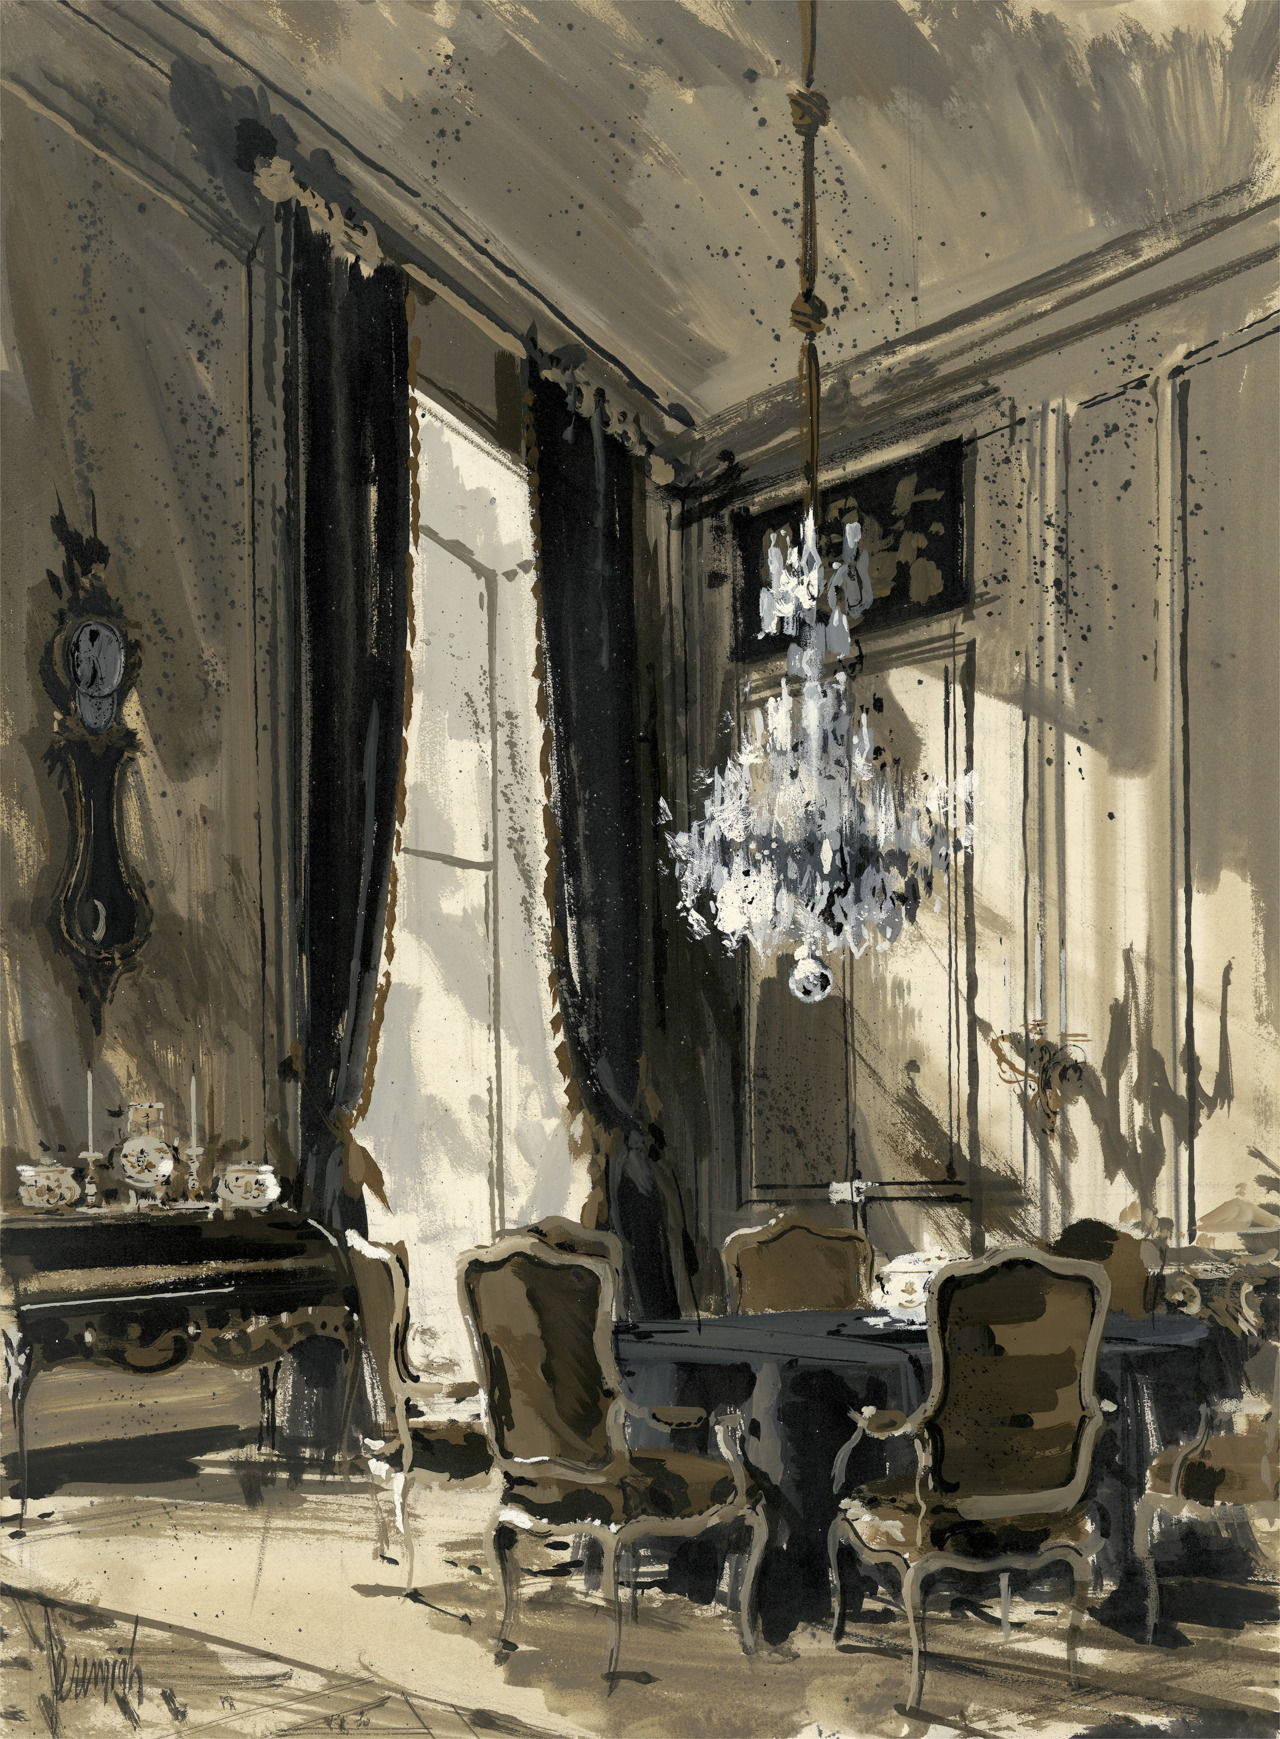 "Jeremiah Goodman Dining Room of the Interior Designer Carlos de Beistegui ,  Paris, 1960 Jeremiah Goodman born in 1922 has painted illustrations of interior spaces for nearly every design magazine from the 1950s through the present. His moody gouache paintings ""interpreted"" the homes of international luminaries and spaces created by global design leaders: Bruce Weber, Edward Albee, Yves Saint Laurent, Mario Buatta, Billy Baldwin, Elsie de Wolfe, Diana Vreeland, the Duchess of Windsor, Rose Cumming, Sir John Gielgud' Greta Garbo, Cecil Beaton, etc."